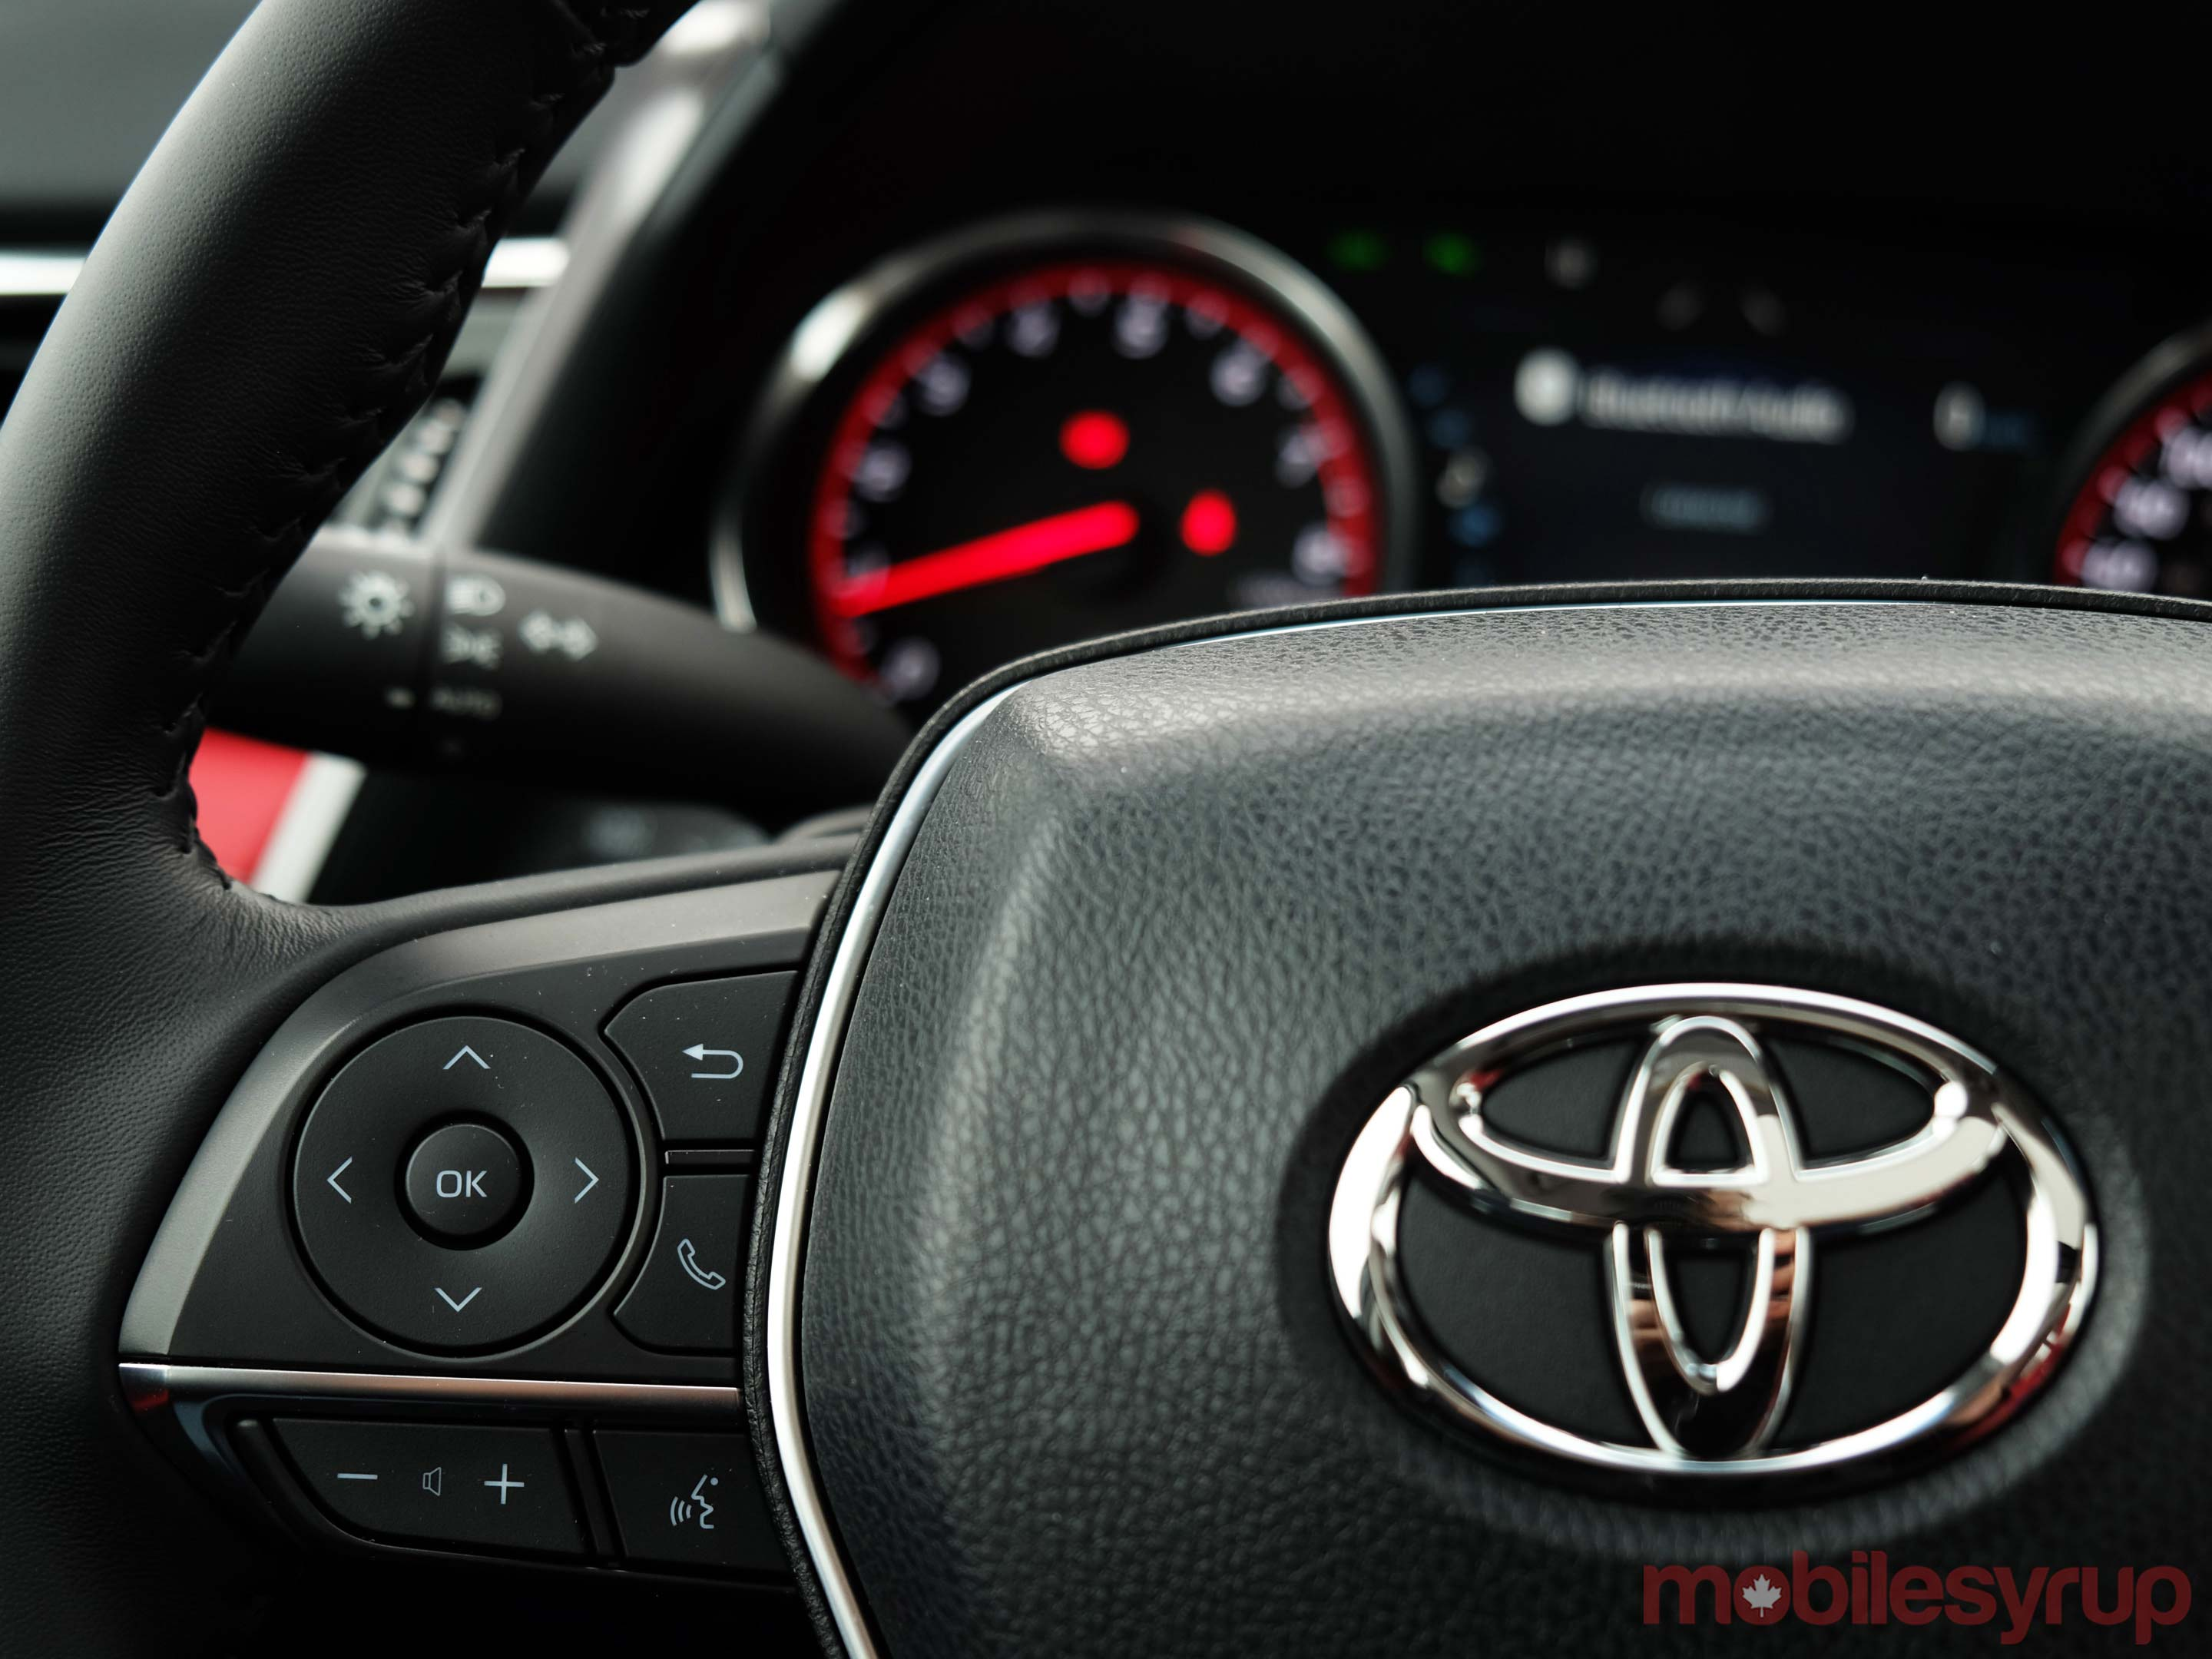 Toyota steering wheel controls